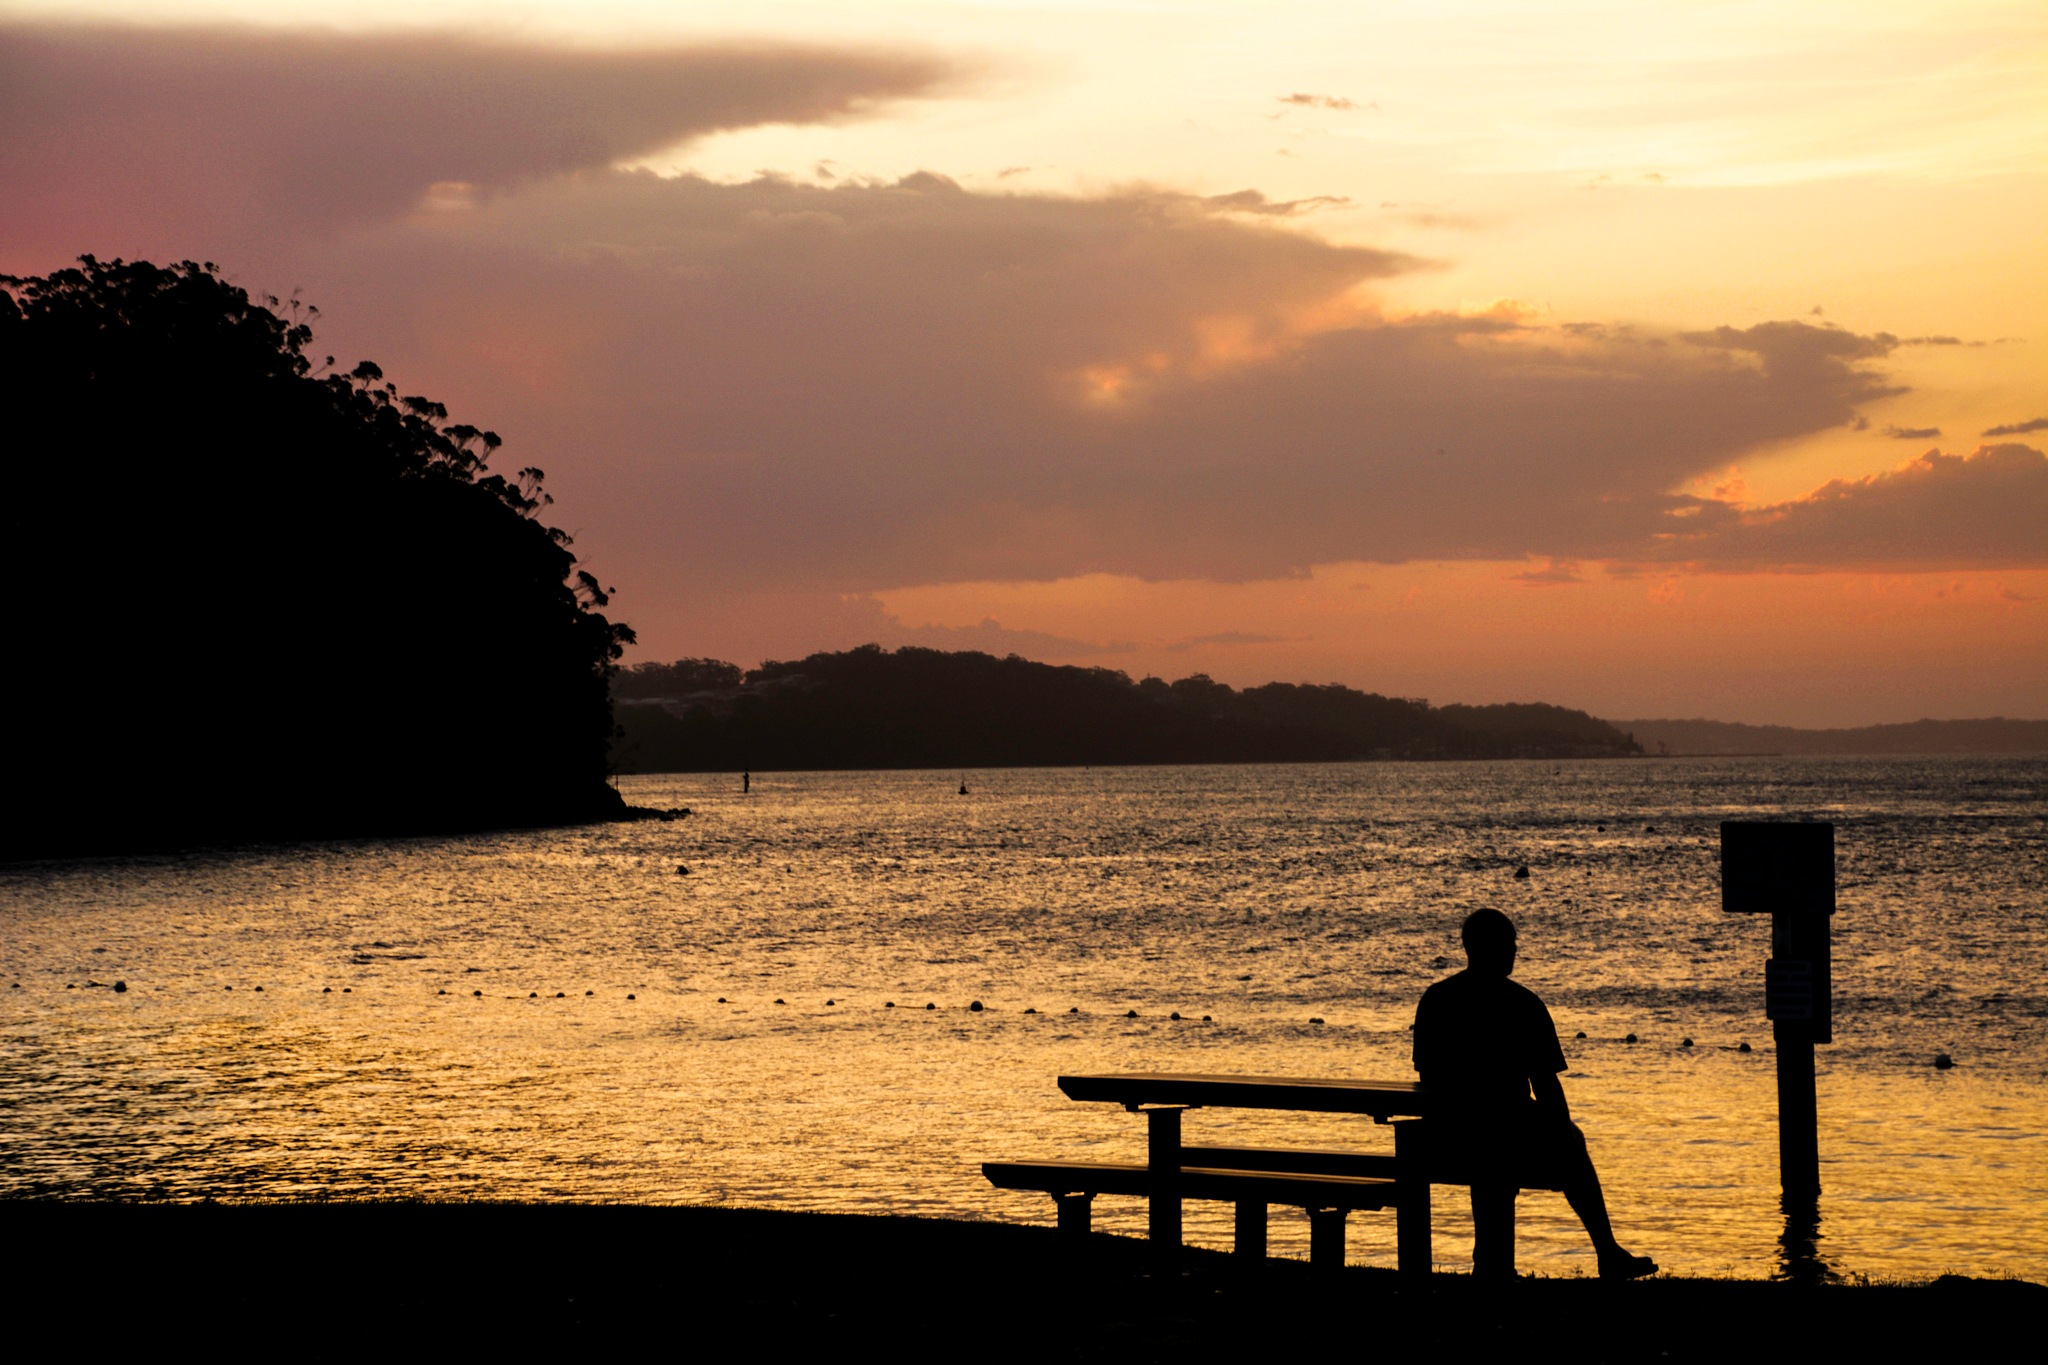 Admiring the Port Stephens sunset by colin.petrie.5